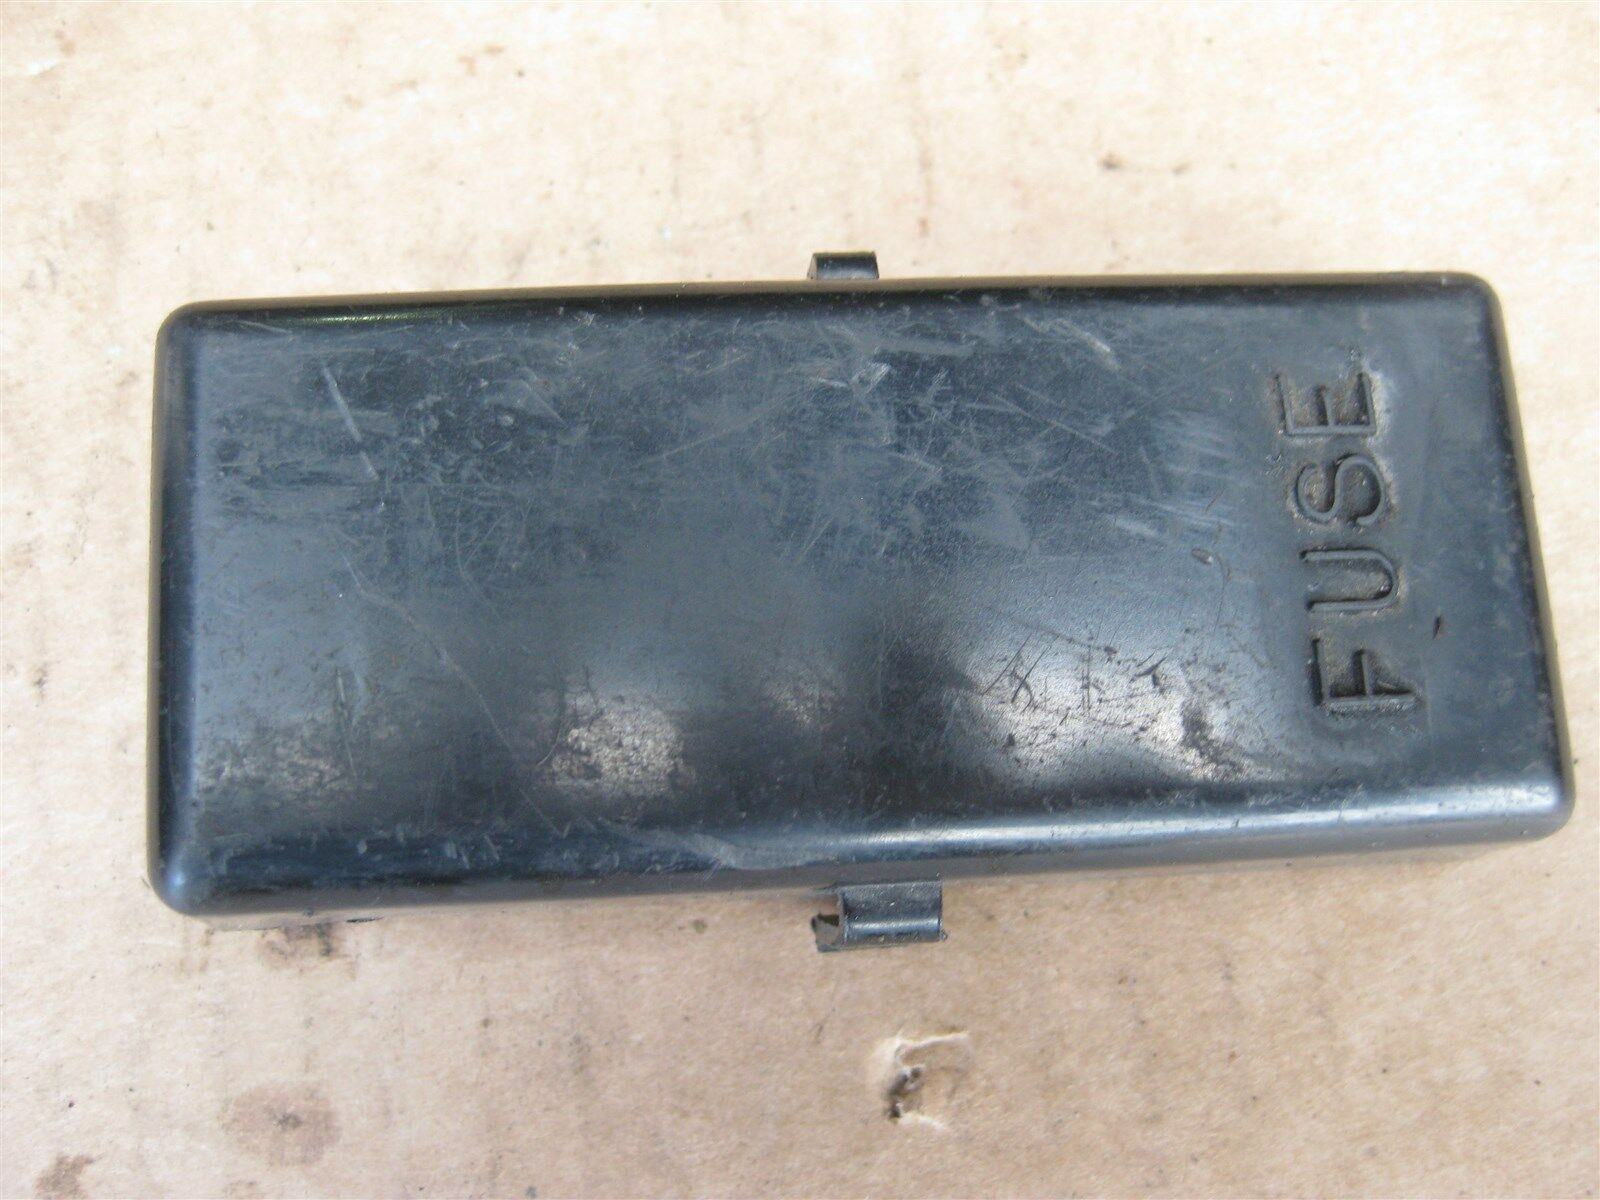 Honda Gl1200 Gl 1200 Goldwing Aspencade Fuse Box Cover Lid 1 of 4Only 1  available ...